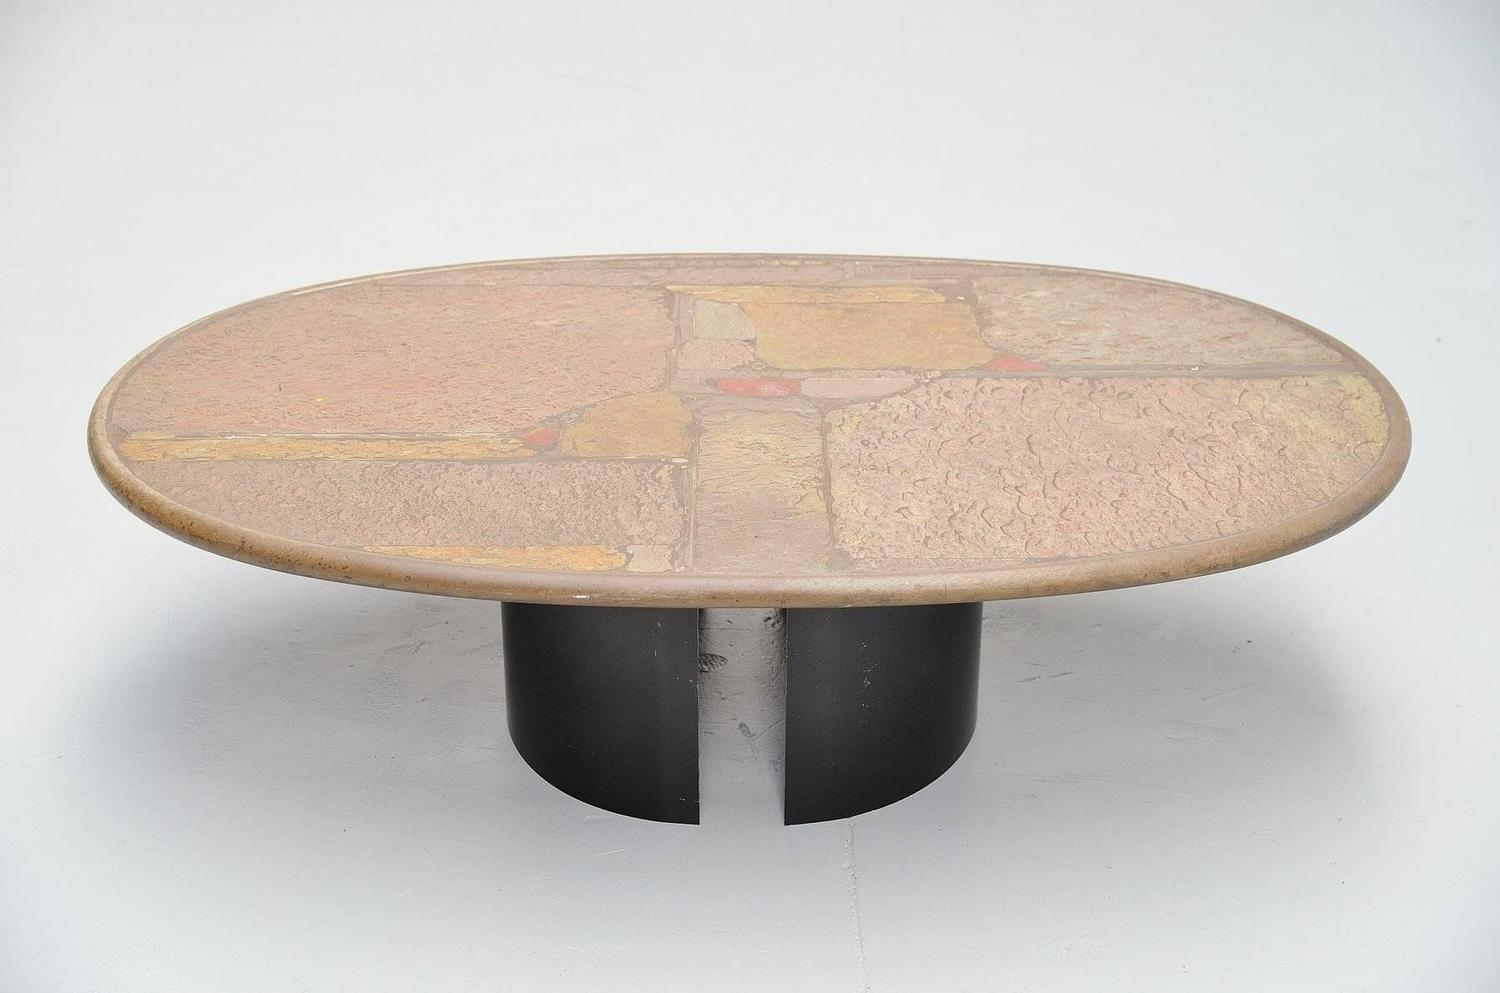 Paul kingma unique oval coffee table holland 1993 at 1stdibs for Unusual cocktail tables